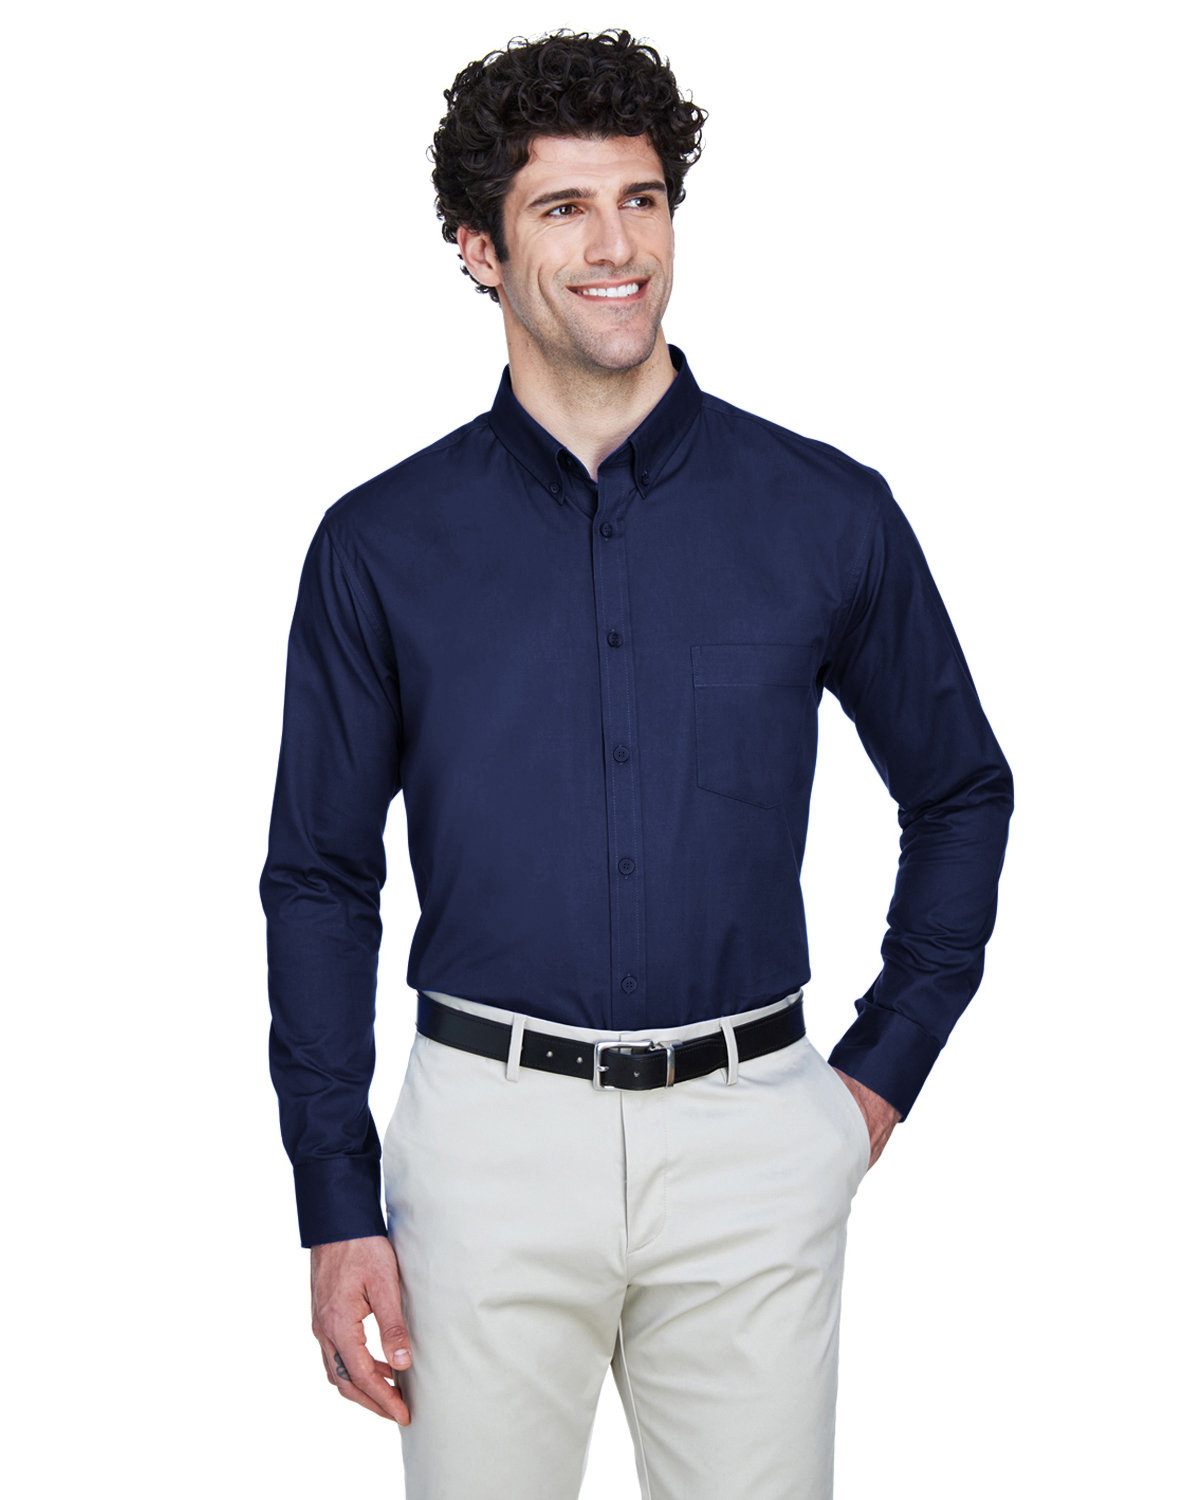 Core 365 Men's Operate Long-Sleeve Twill Shirt CLASSIC NAVY